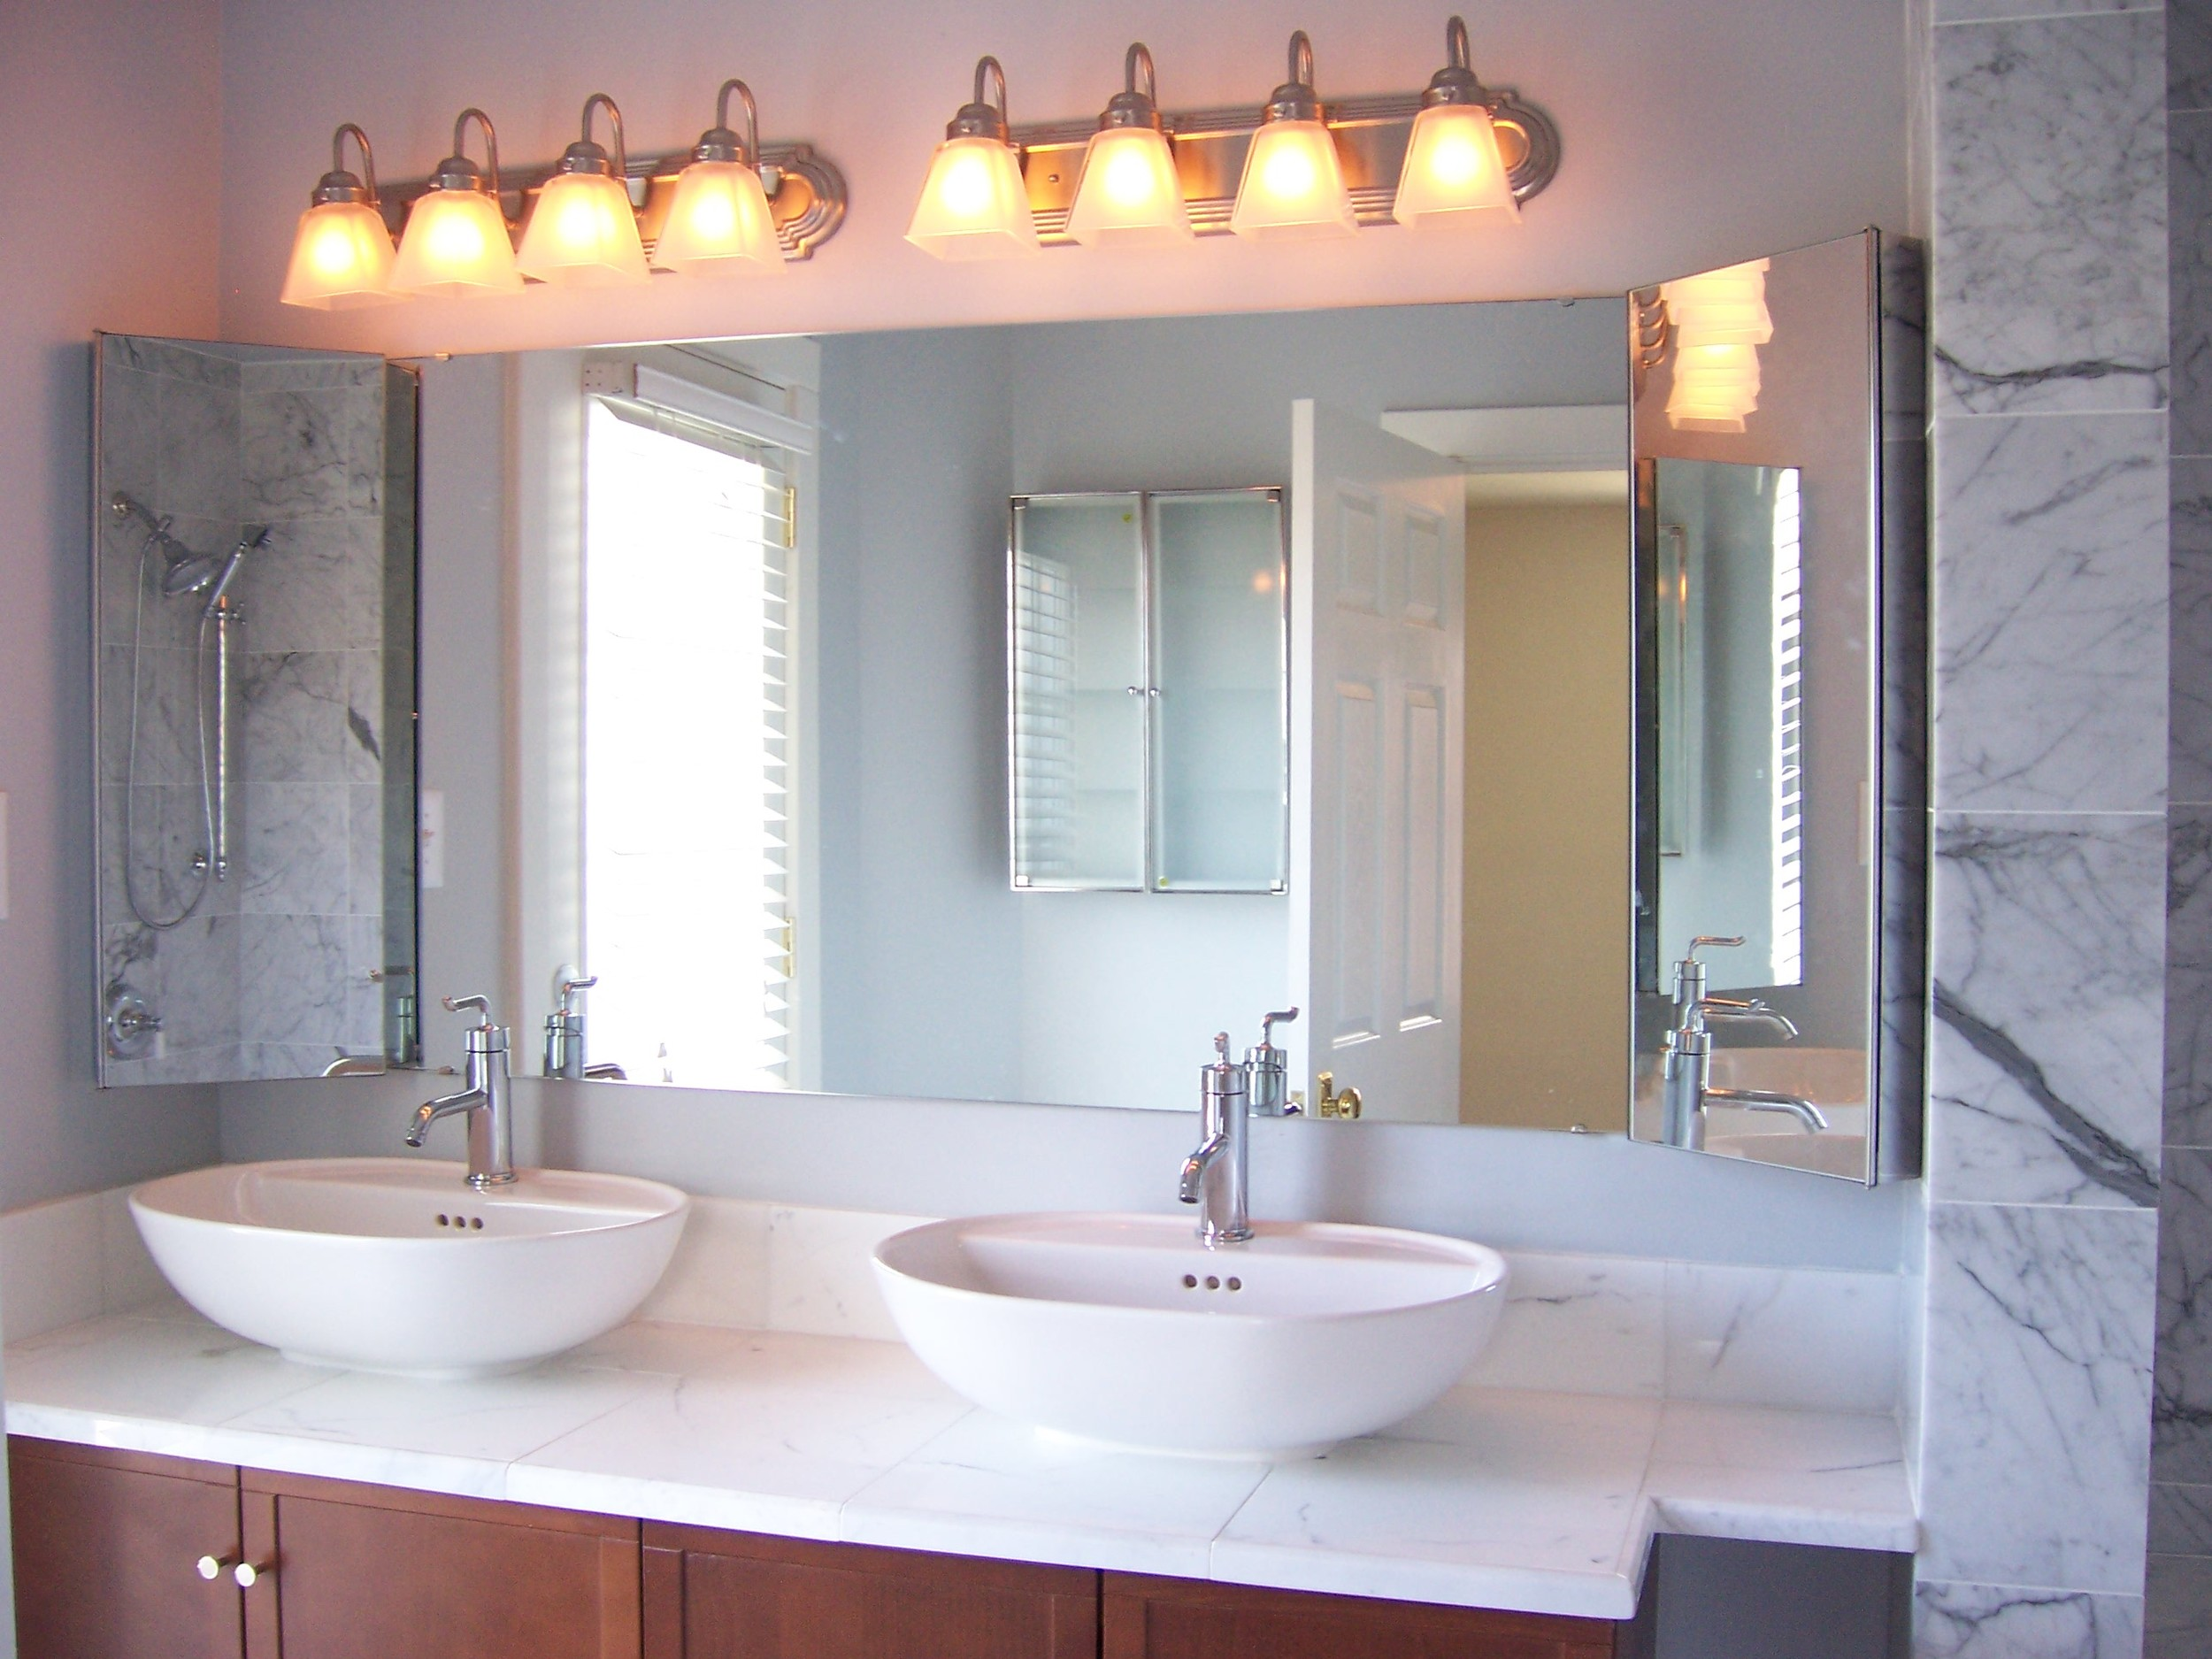 Belmont Four Square Master Bath - Marble Tile, Double Vanity with Vessel Sinks